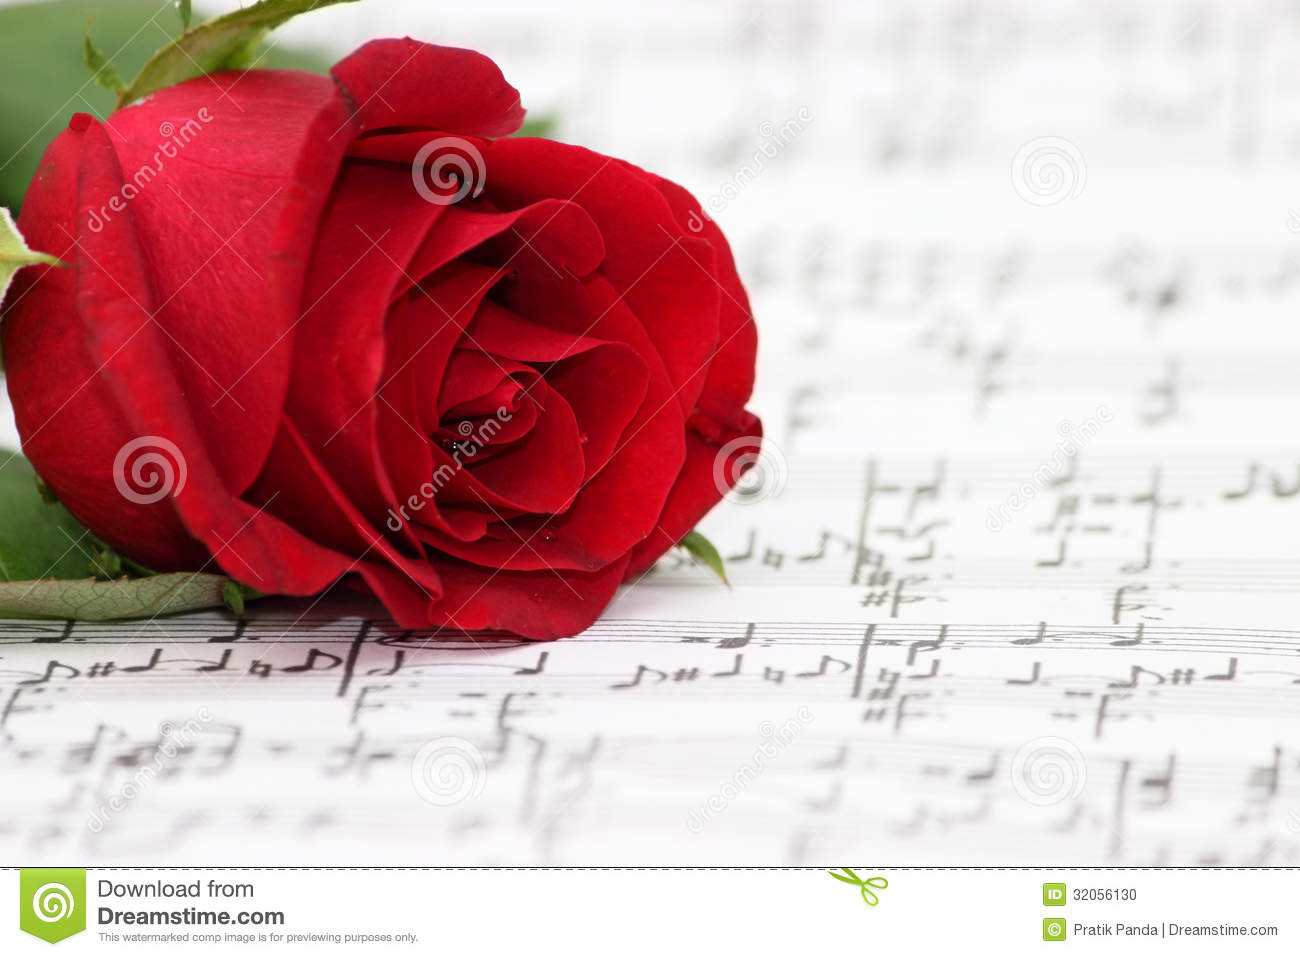 romantic music essay Romanticism in music essaysromantic music reflected the profound changes  that were taking place in the nineteenth century at every level of human existence .